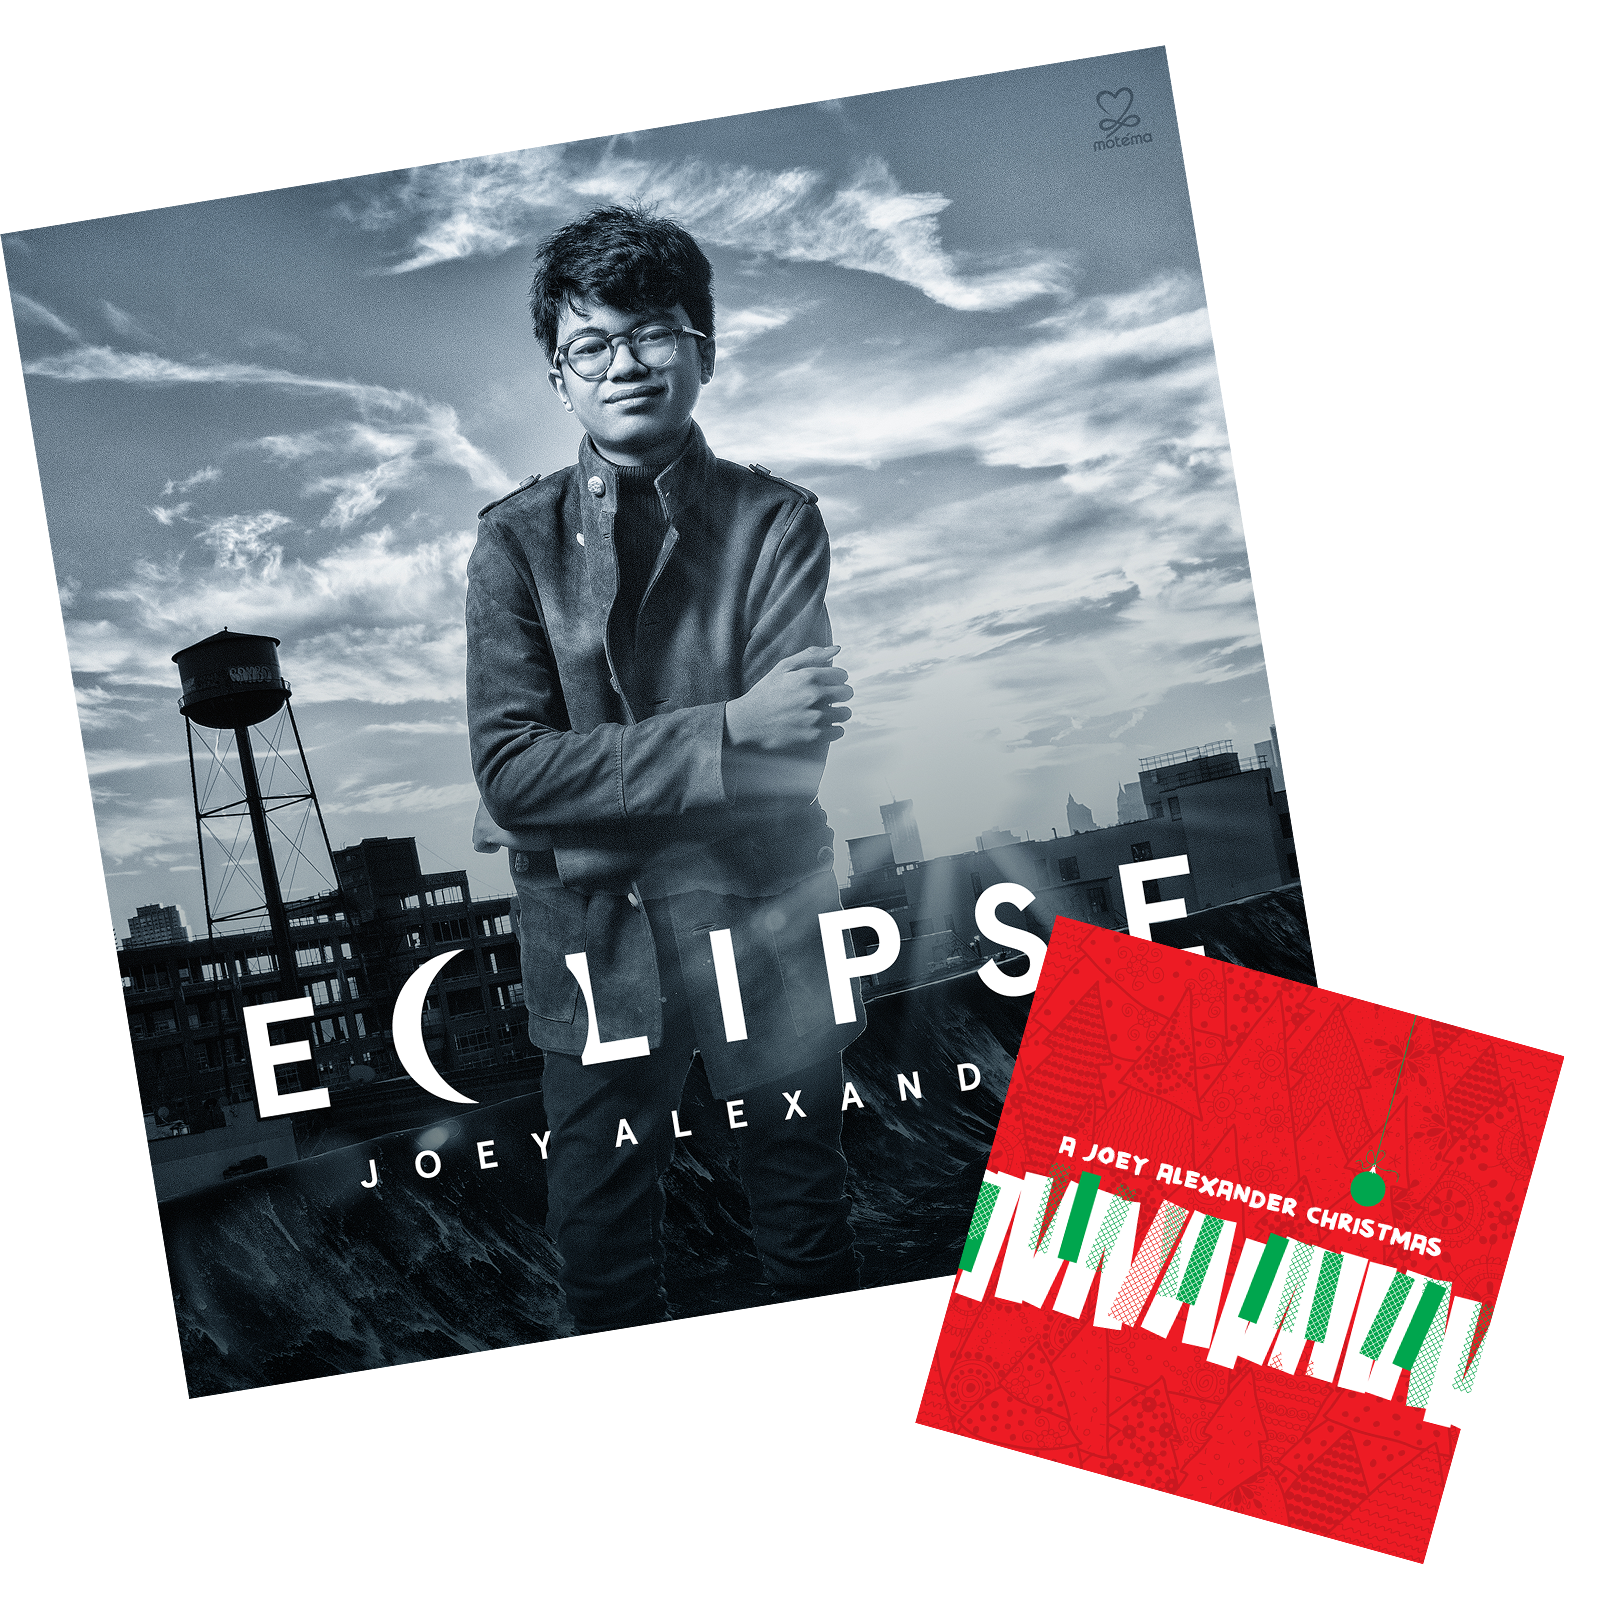 Eclipse (CD) + A Joey Alexander Christmas EP